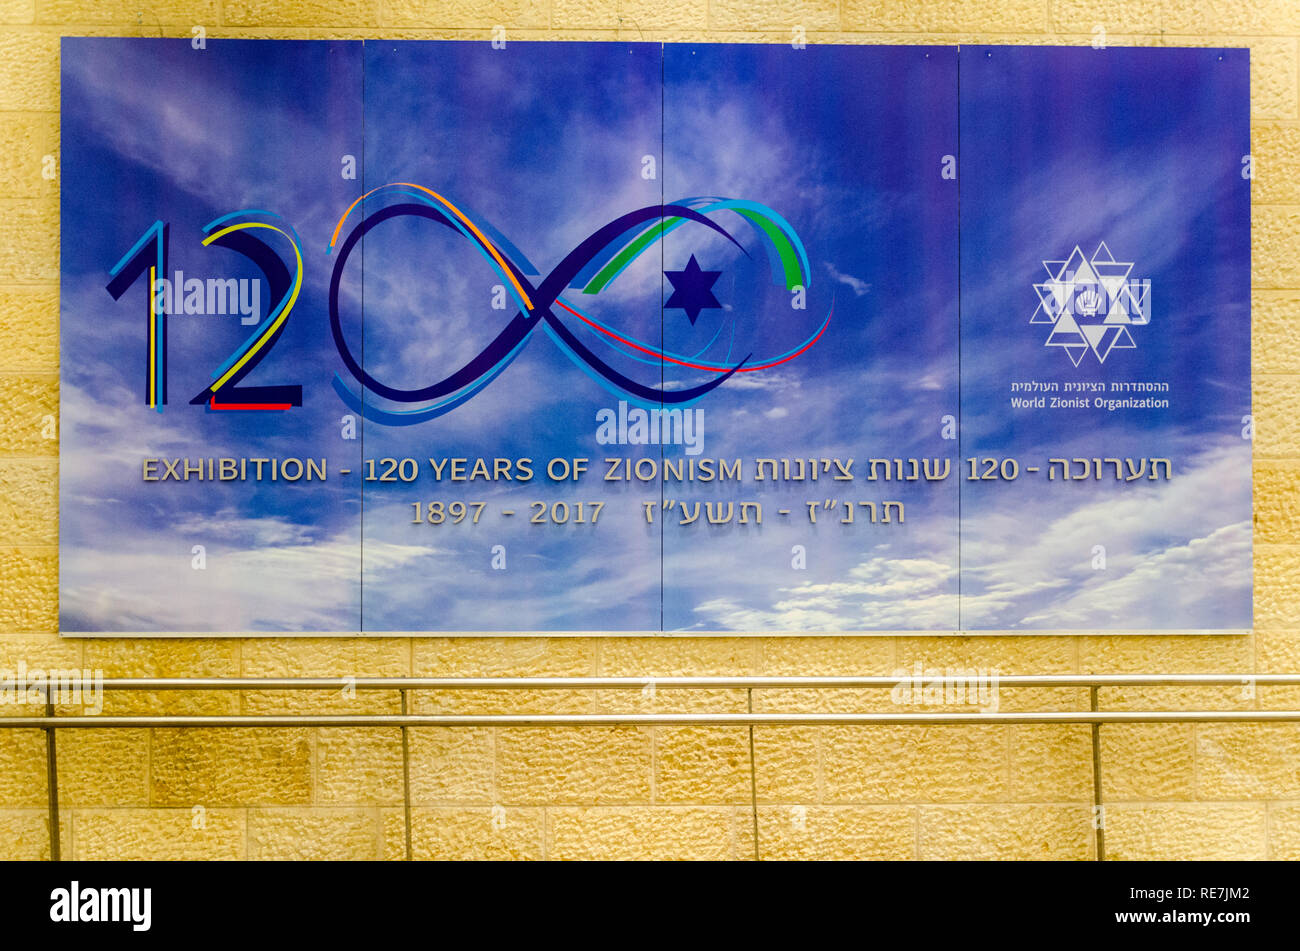 Exhibition '120 years of Zionism' at Tel Aviv airport (Ben Gurion), Israel - Stock Image